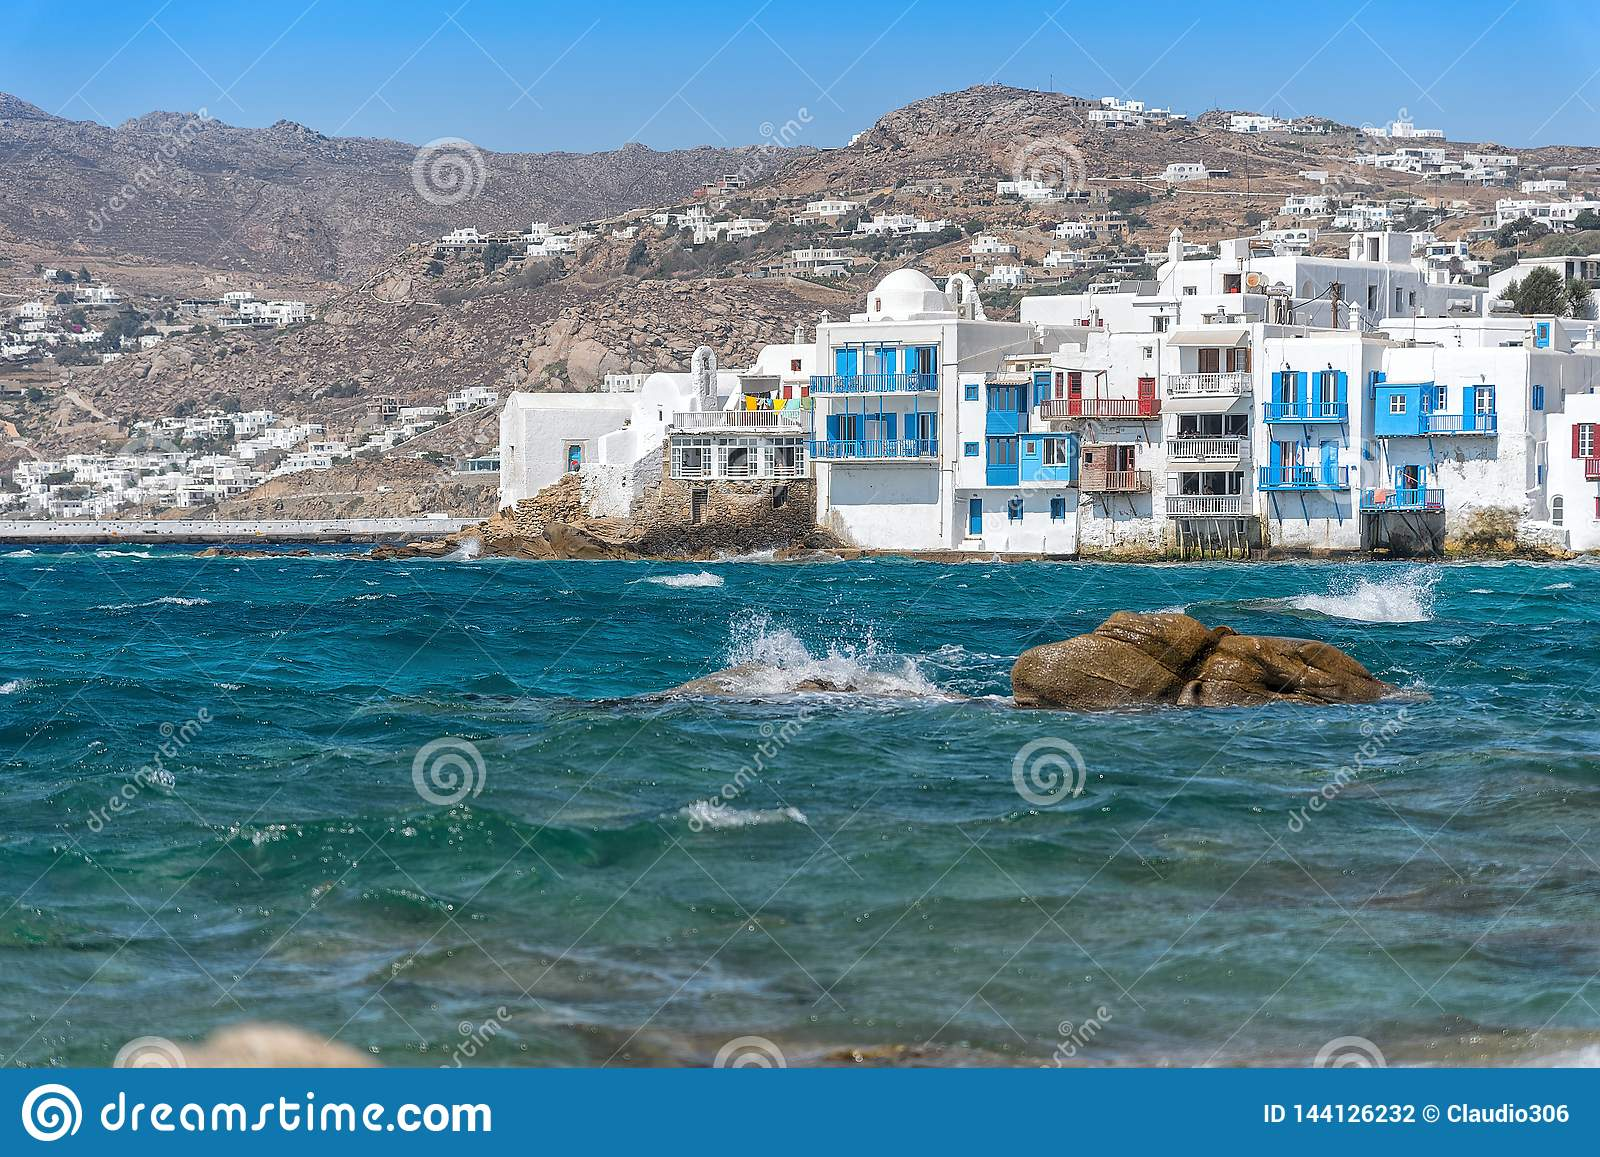 Chora village  Little Venice  - Mykonos Cyclades island - Aegean sea - Greece